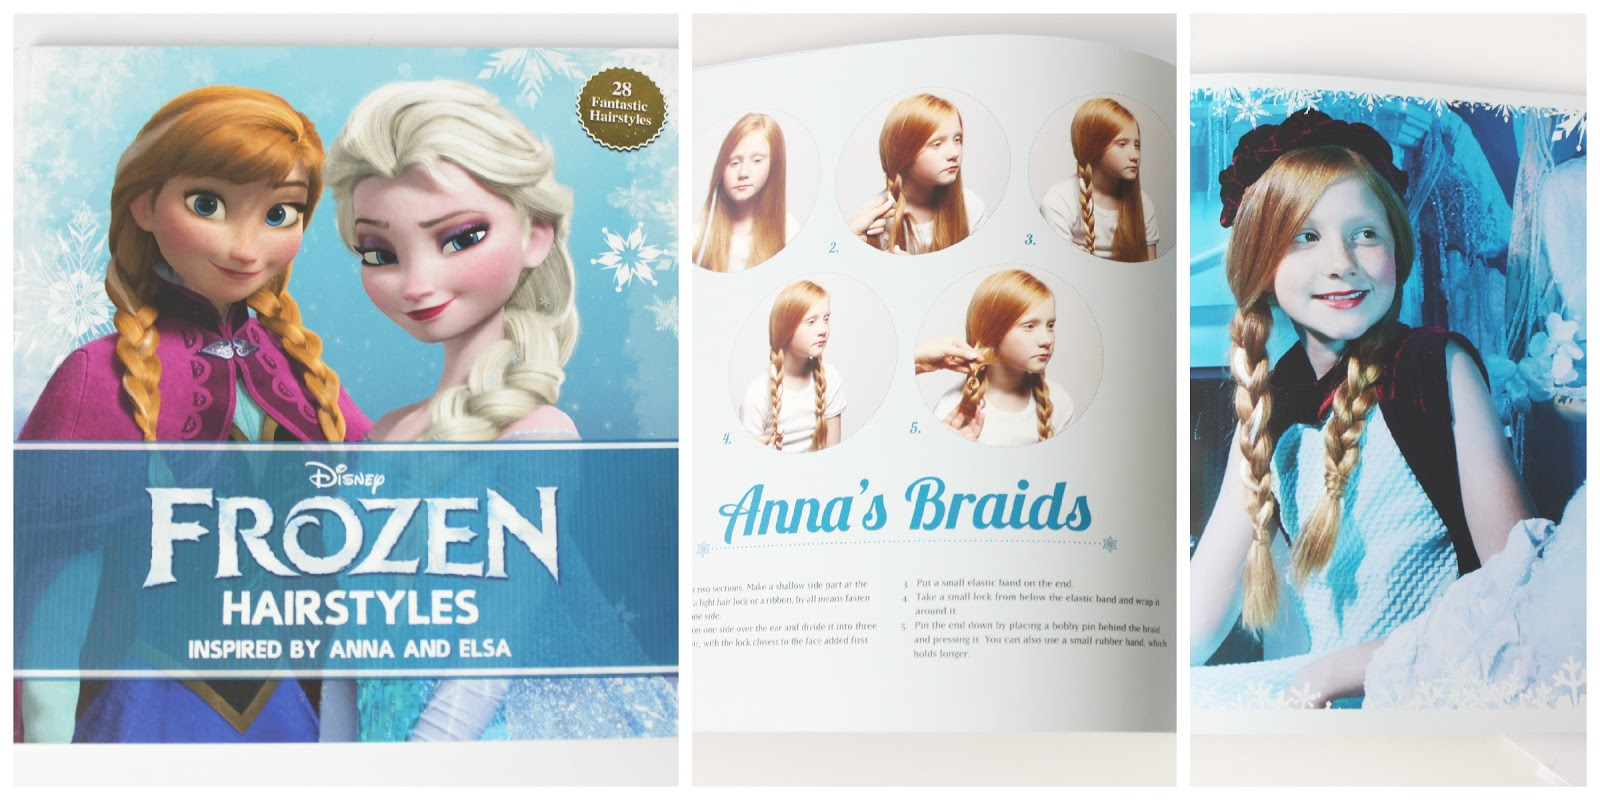 Stunning Book On Hairstyles Images - Styles & Ideas 2018 - sperr.us